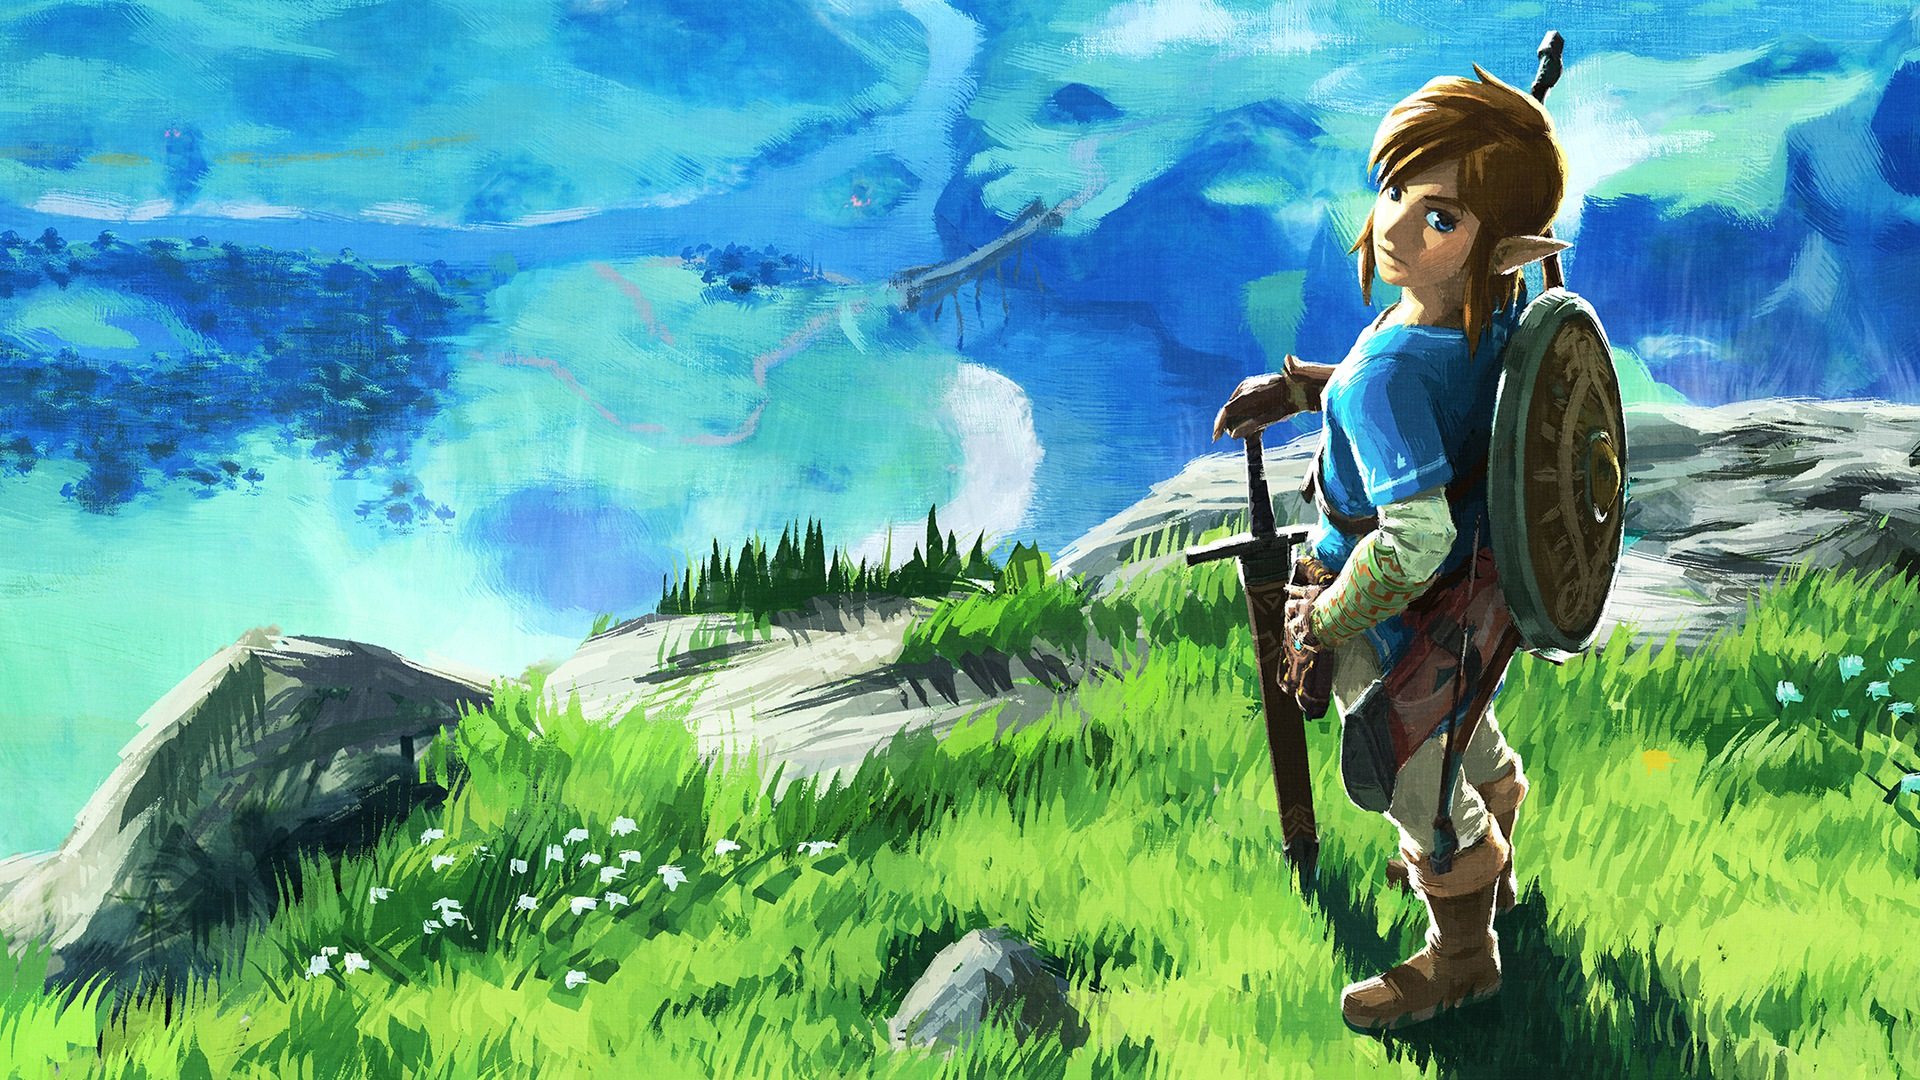 Free Download Zelda Breath Of The Wild Hd Wallpaper Background